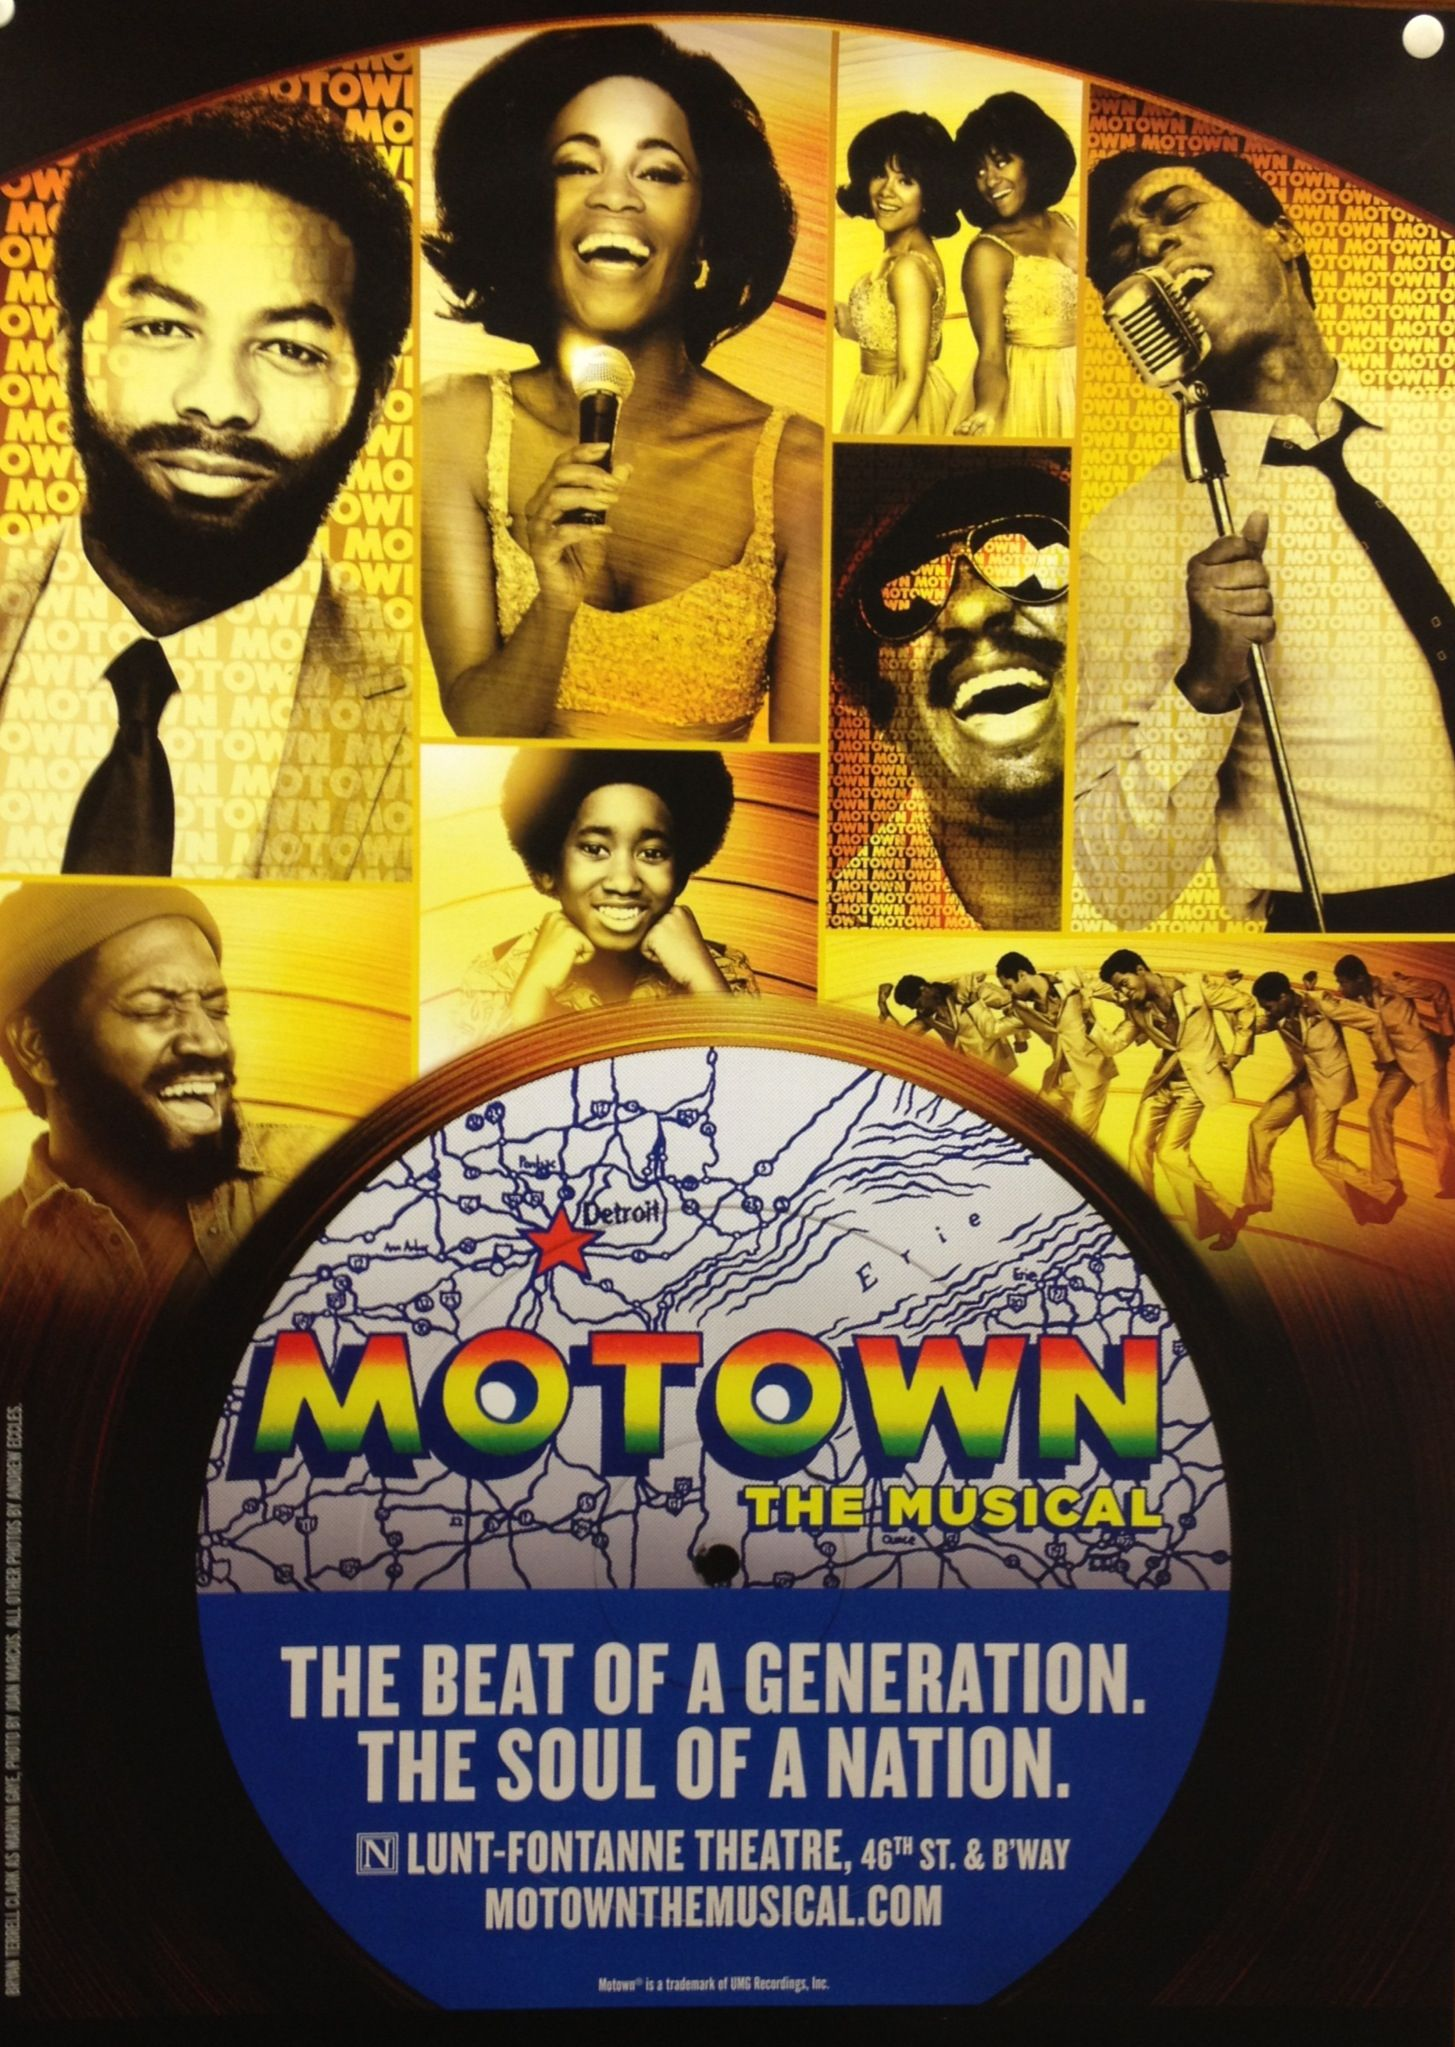 Gordy Movie Cast pertaining to motown the musical on broadway. this musical is filled with an